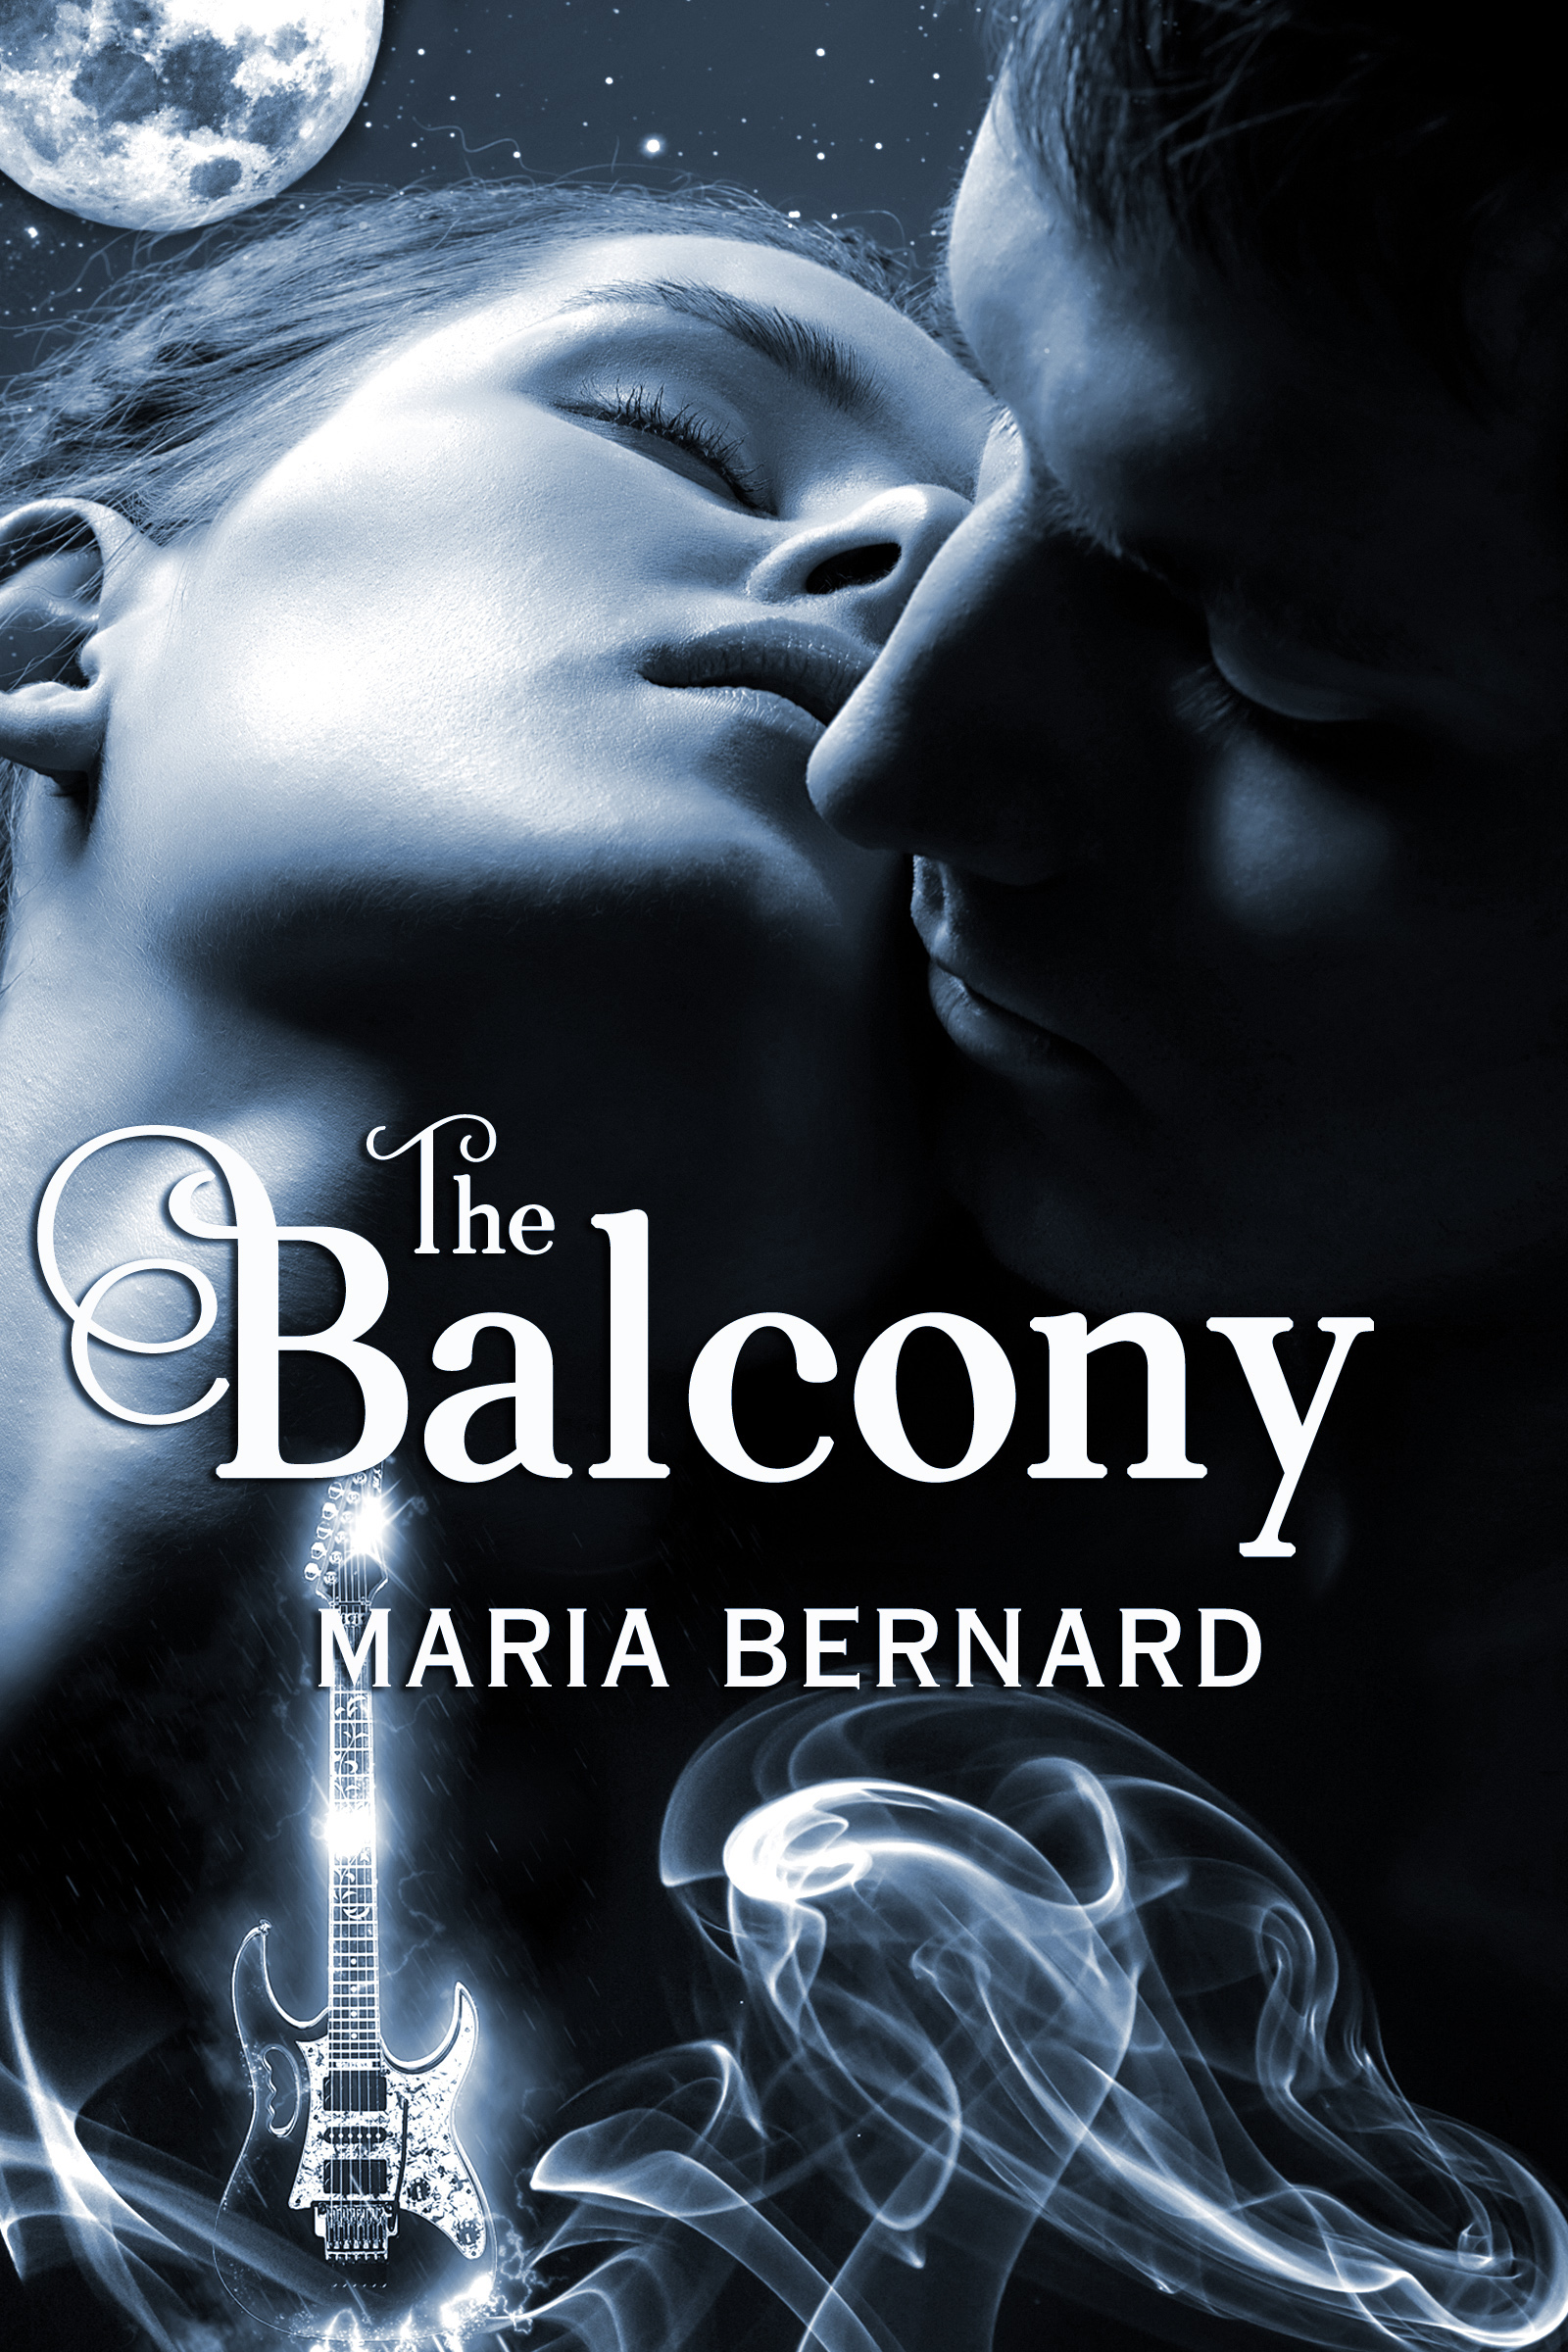 Book Cover, The Balcony, Rockstar Romance, Paranormal Romance